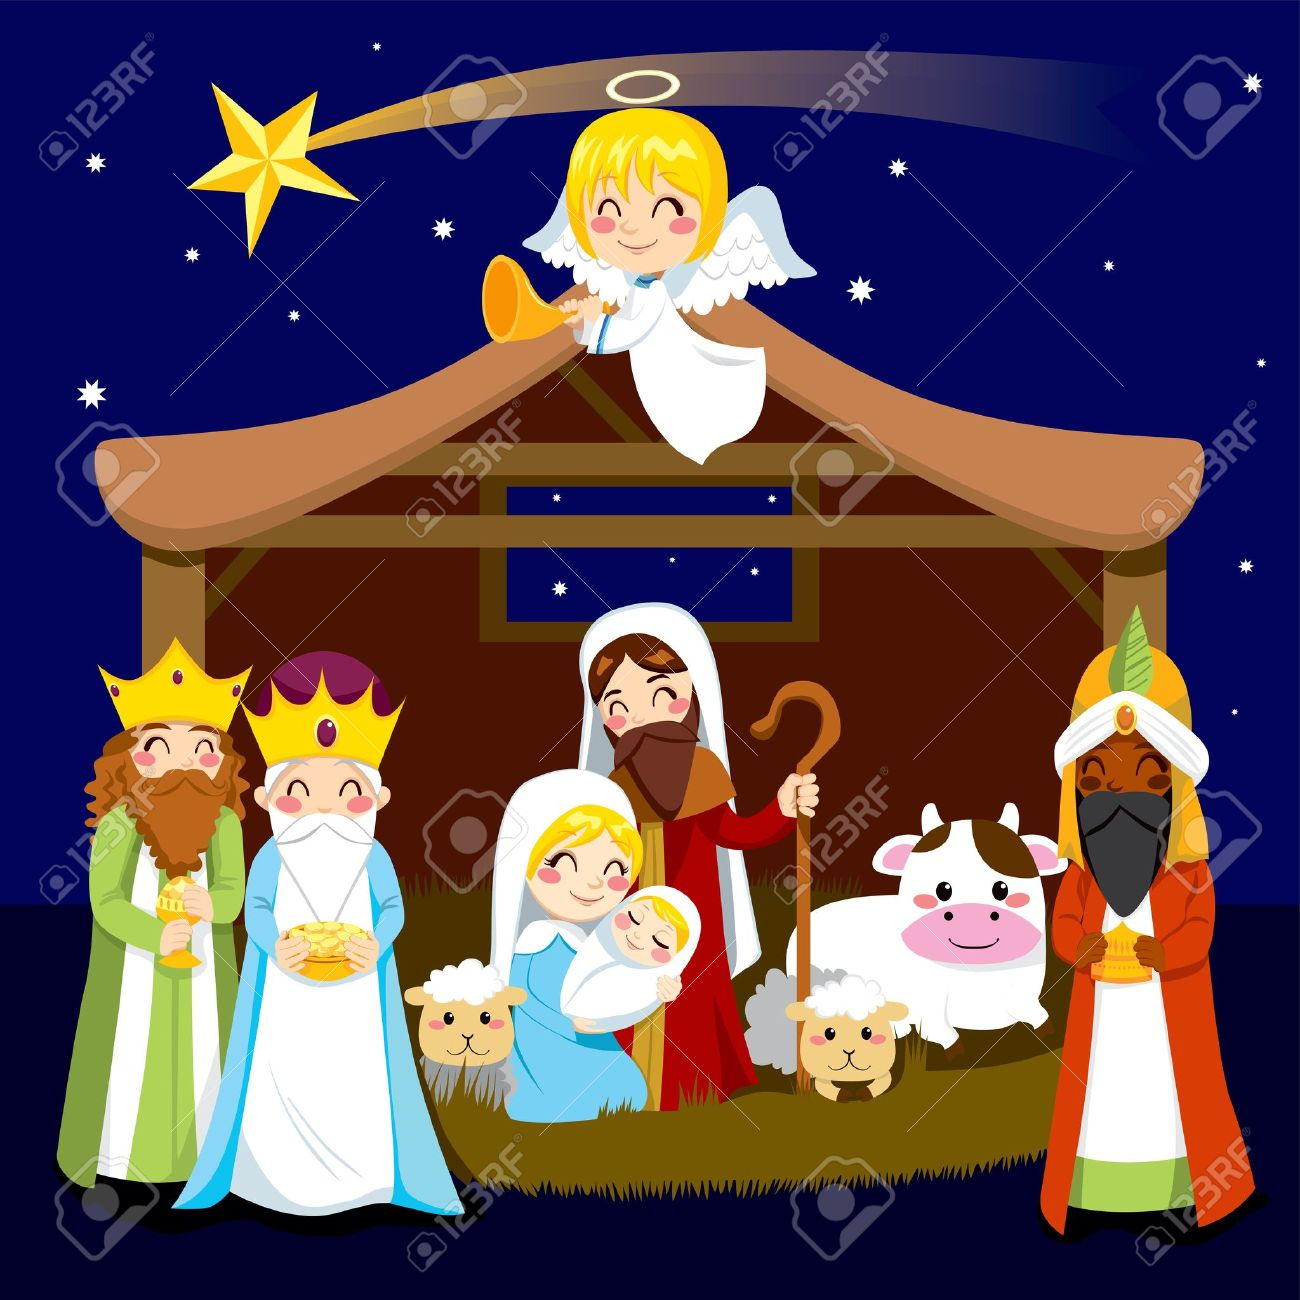 animated nativity scene clipart #5